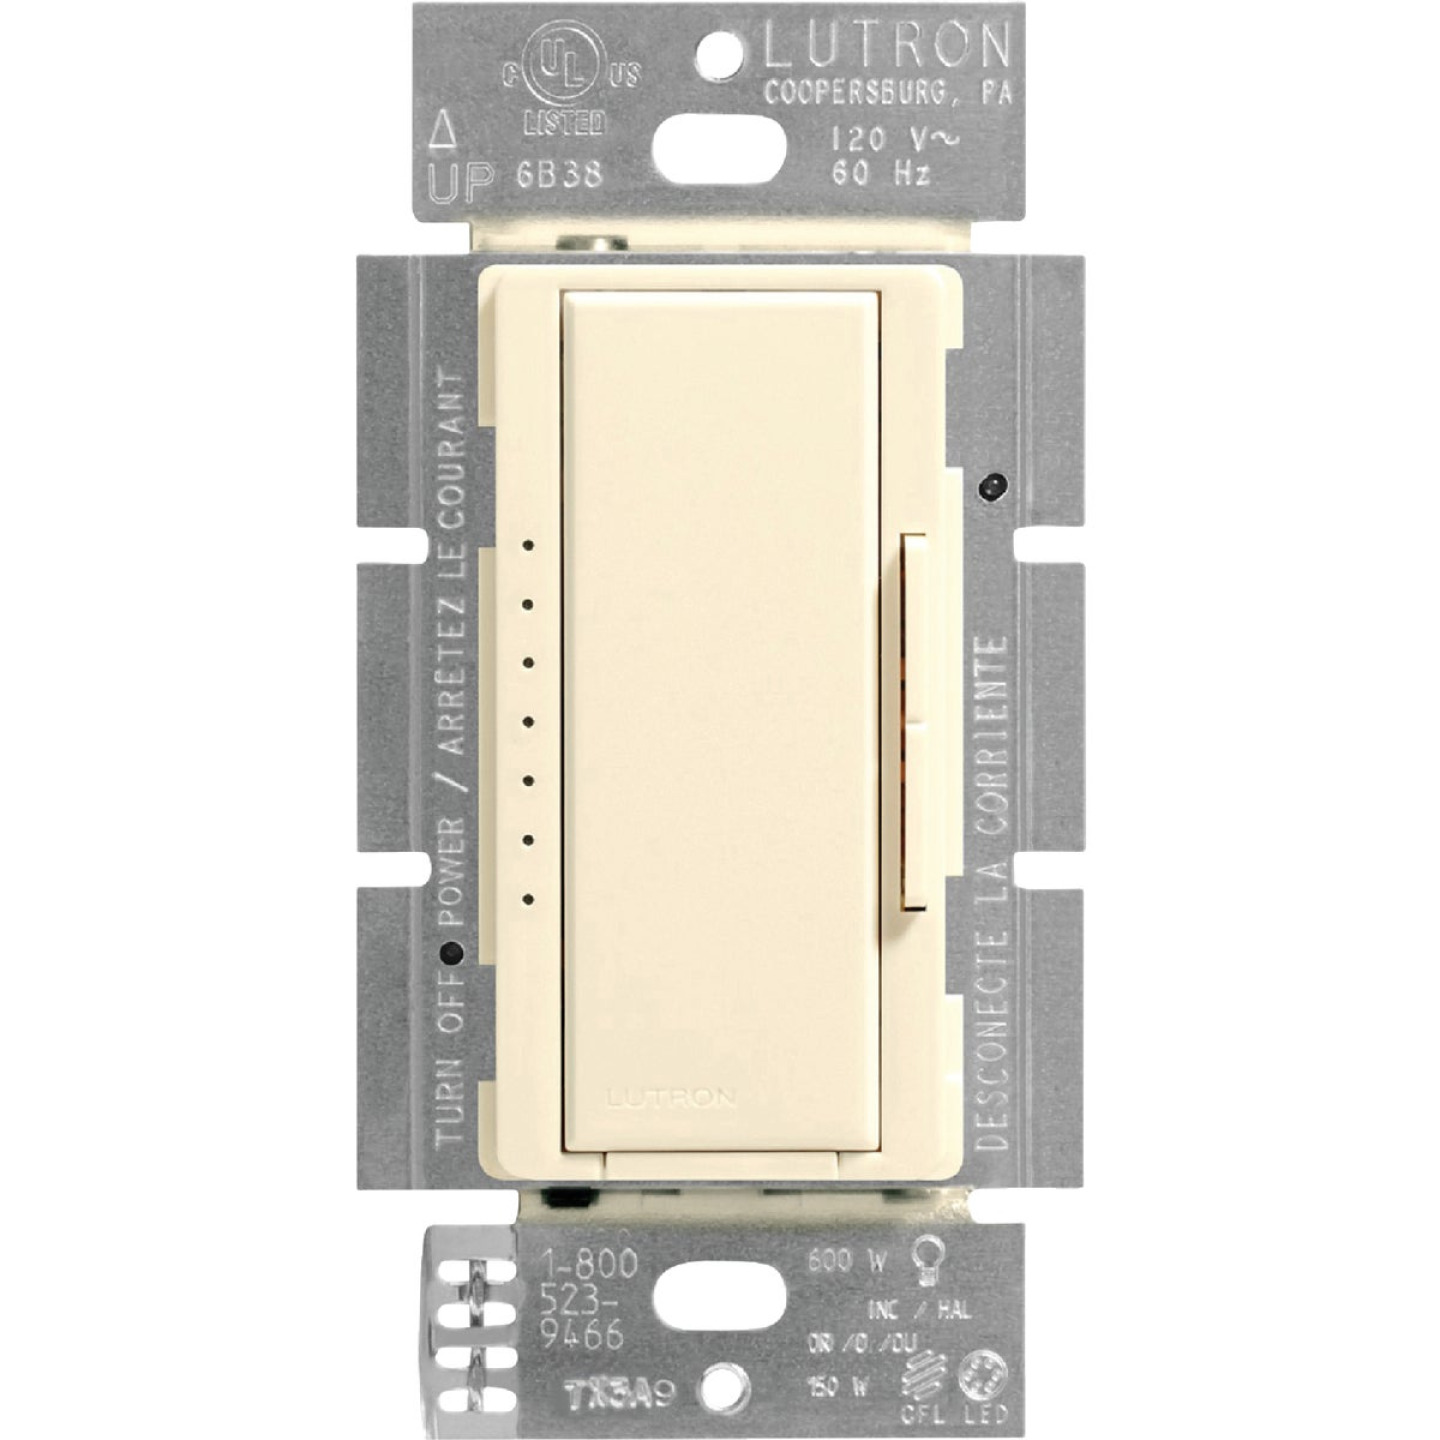 Lutron Maestro CL Light Almond 120 VAC Wireless Dimmer Image 3